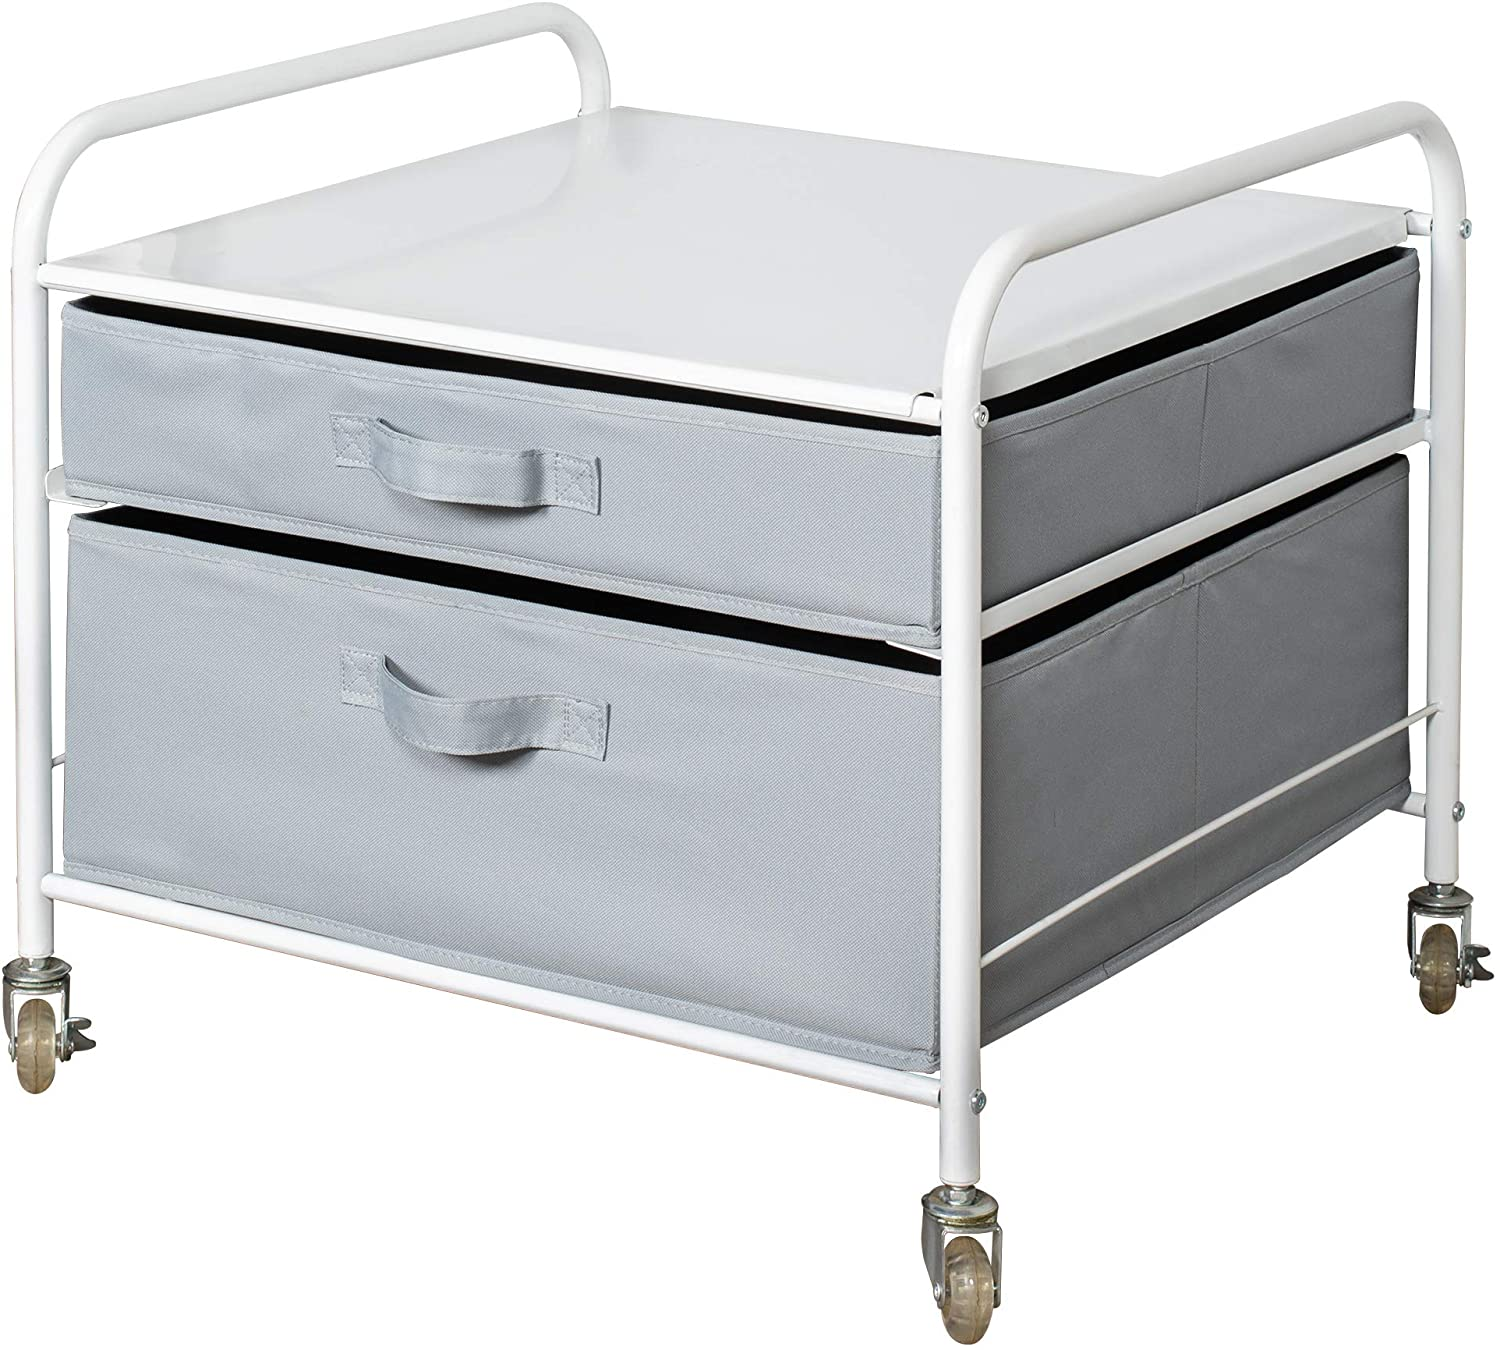 The Fridge Stand Supreme - Drawer Organization - White Frame with Light Gray Drawers